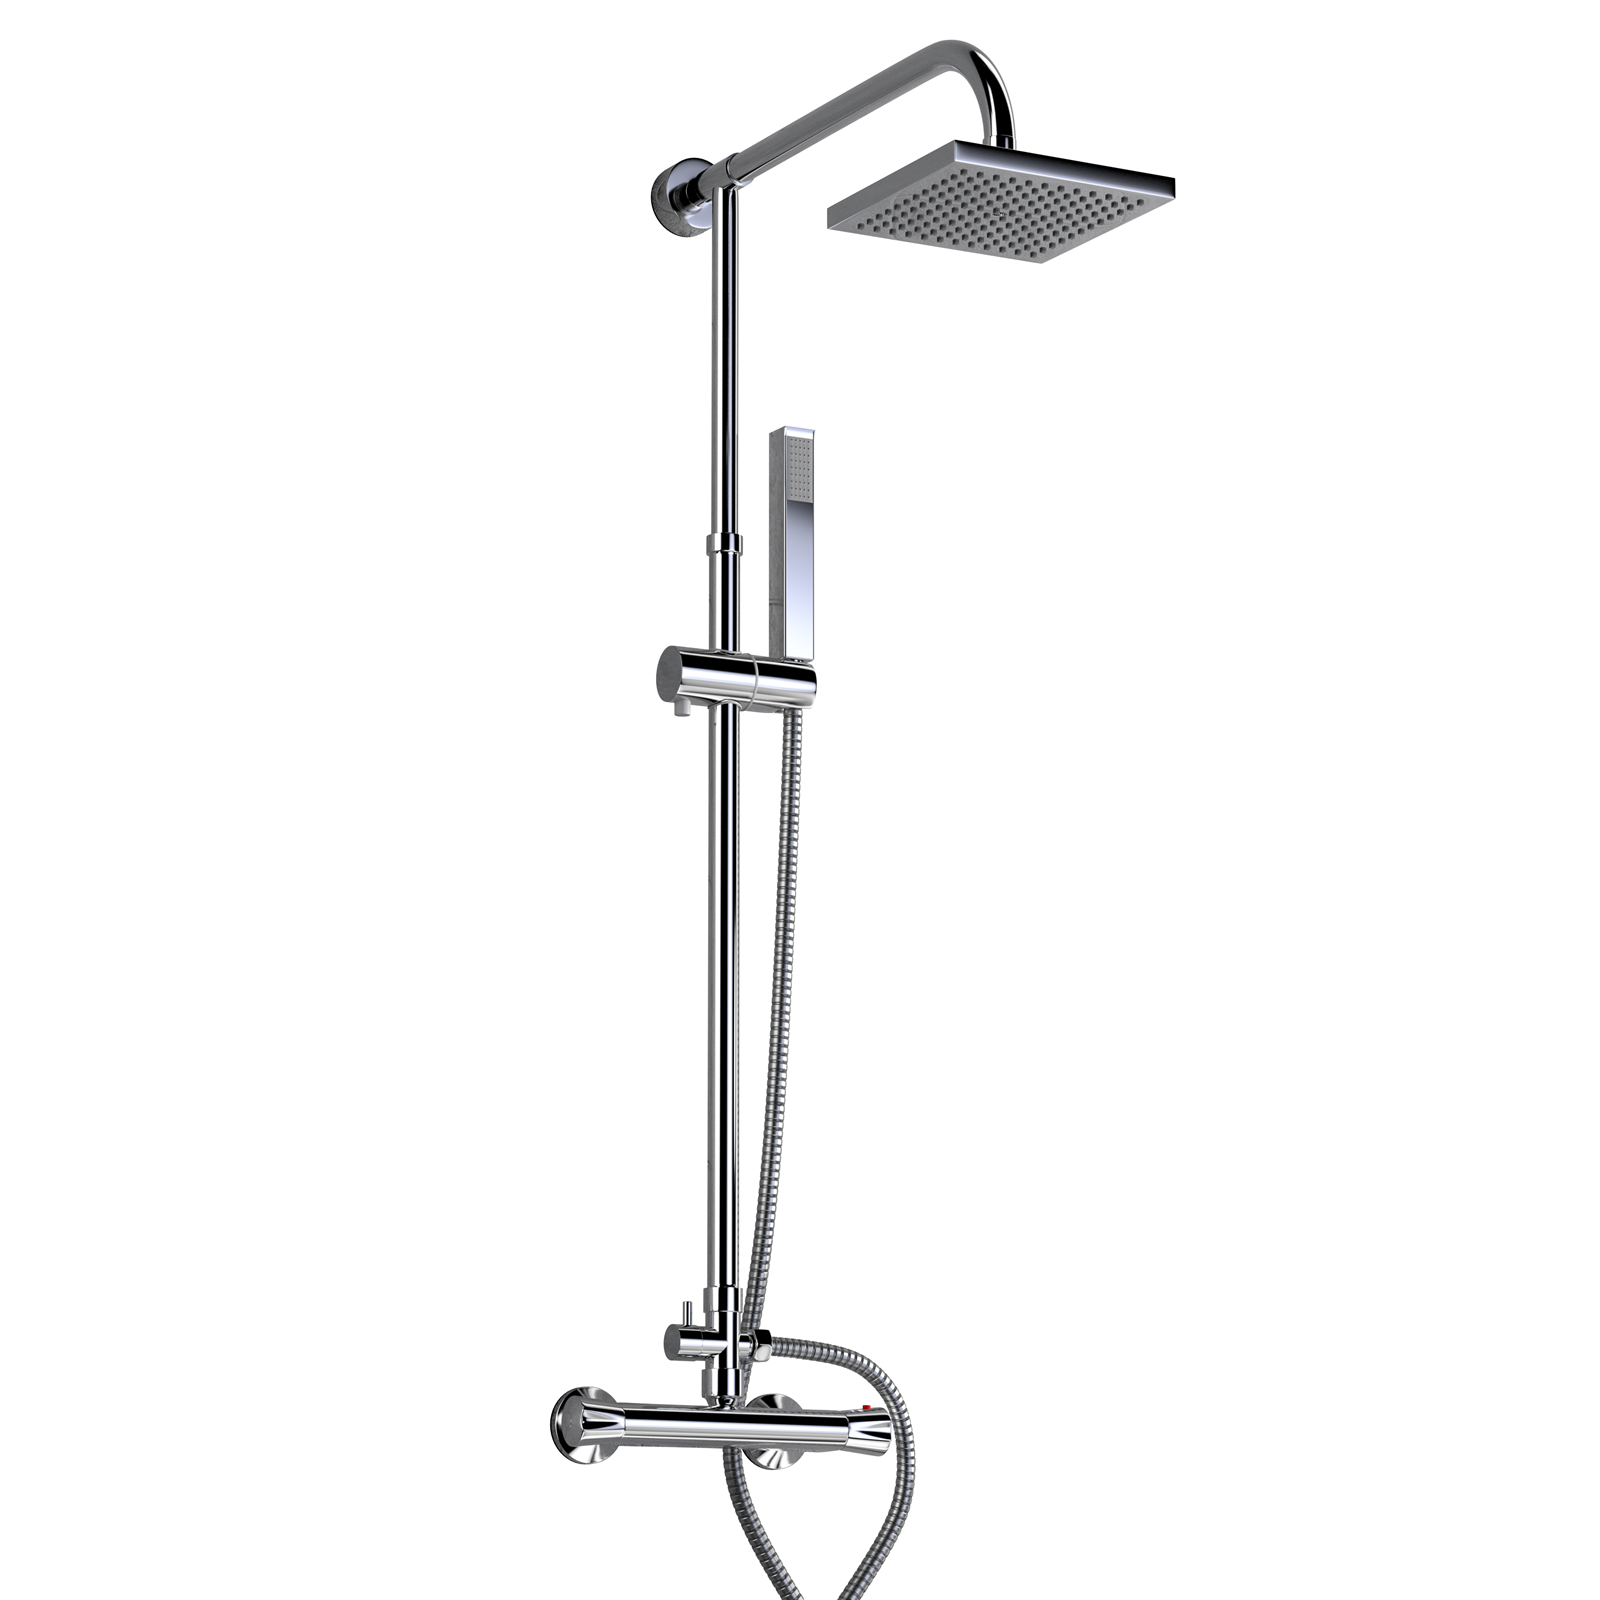 Index of /images/shower-units/thermo-listing